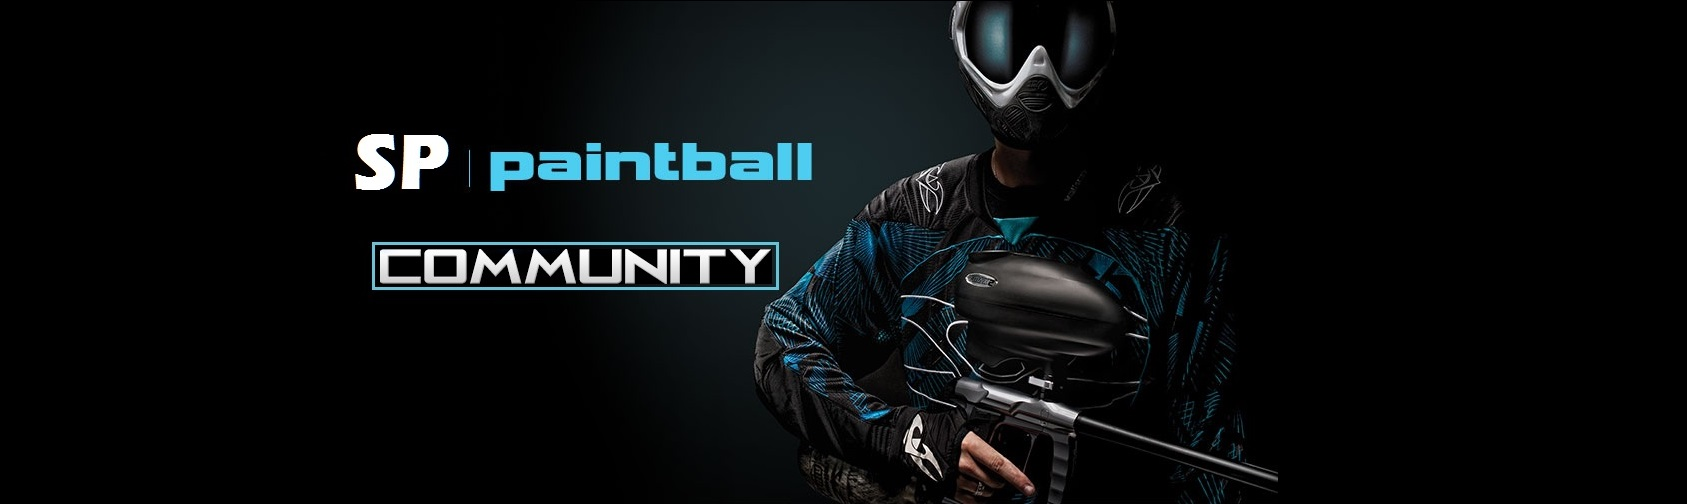 StrikePaintball  Community